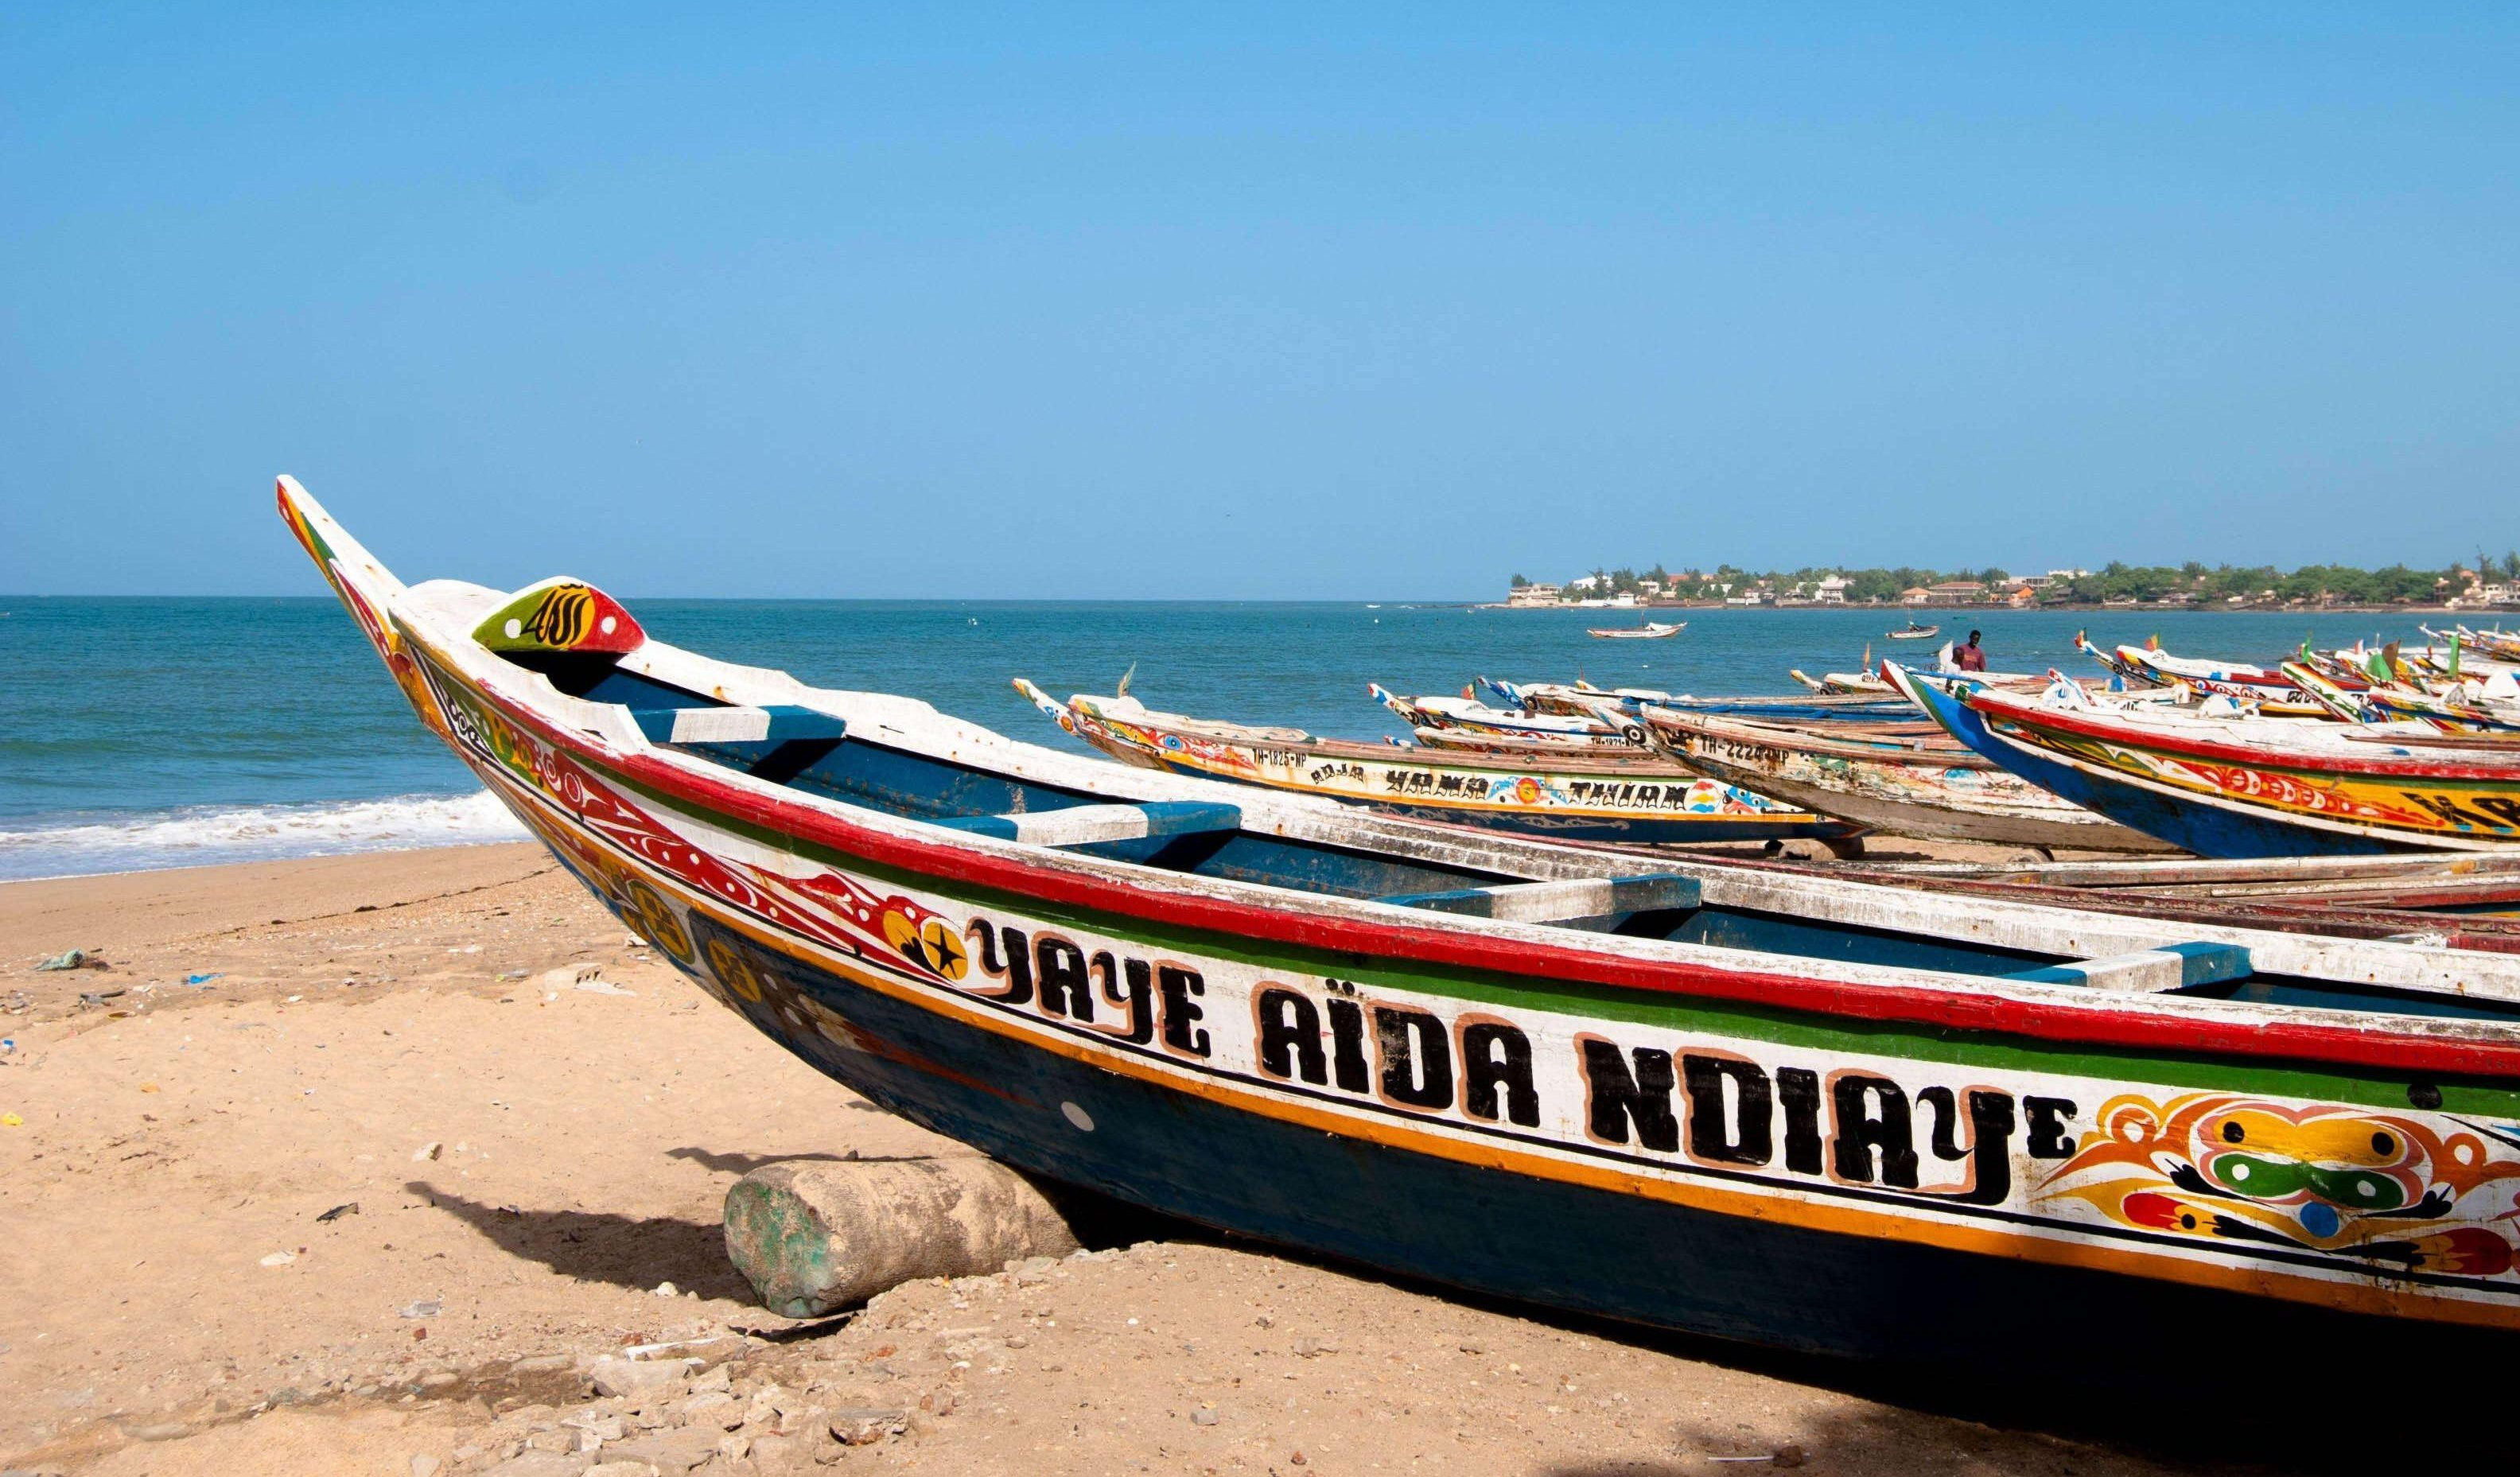 Senegal acts to protect its fisheries: Will Ghana do the same?